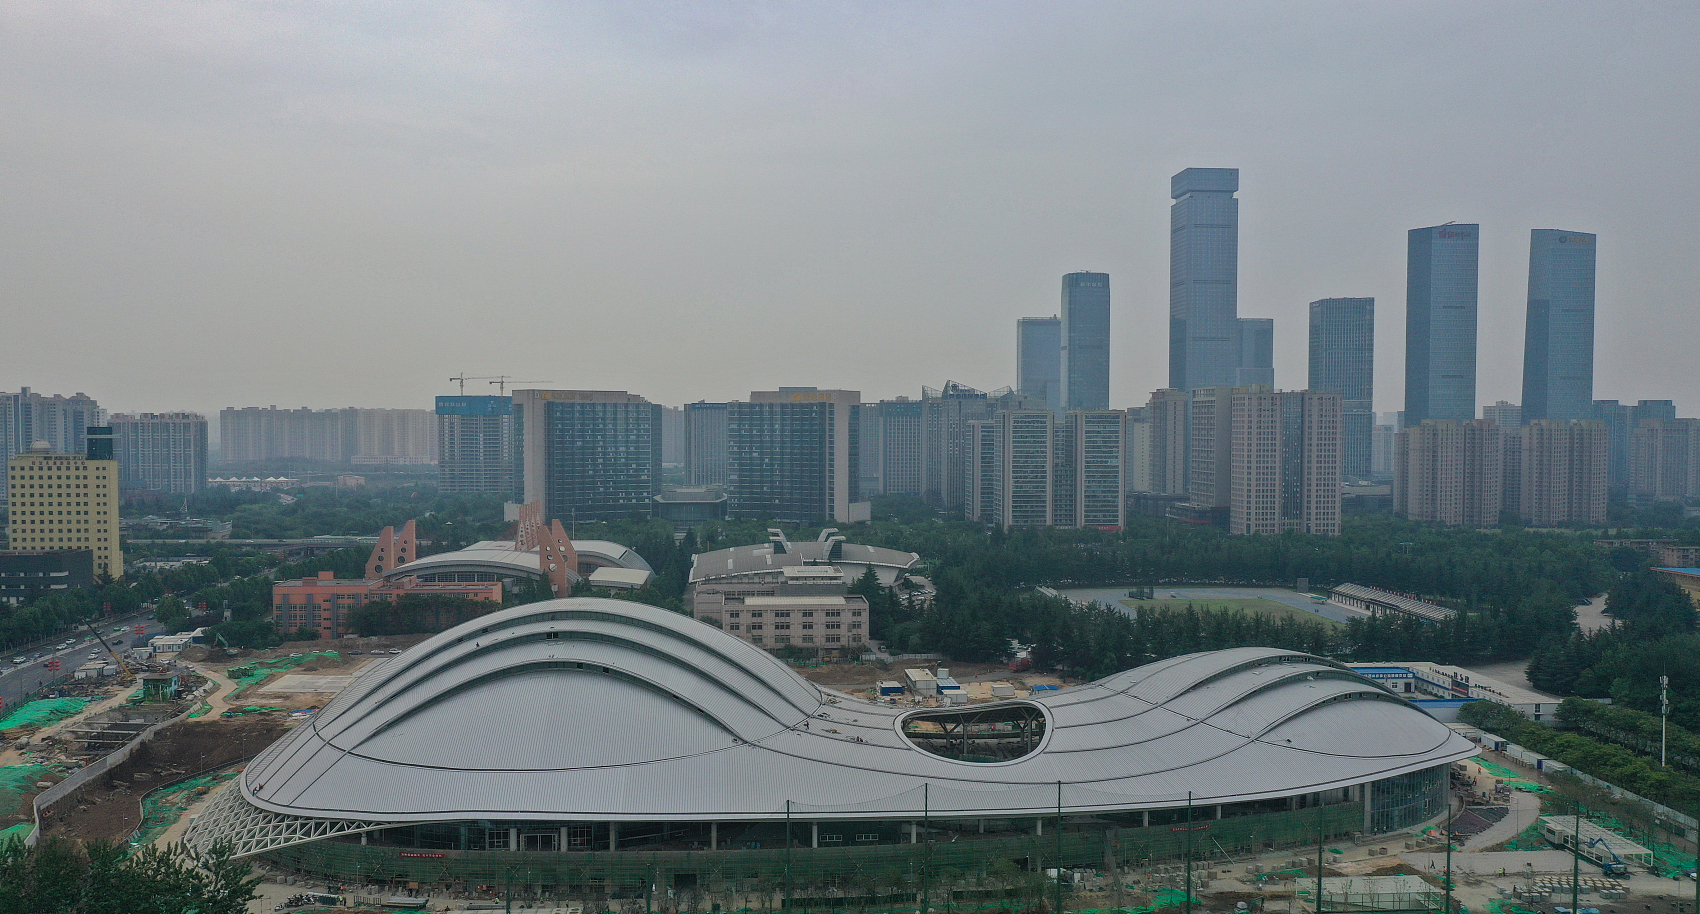 All venues completed ahead of China's 14th National Games